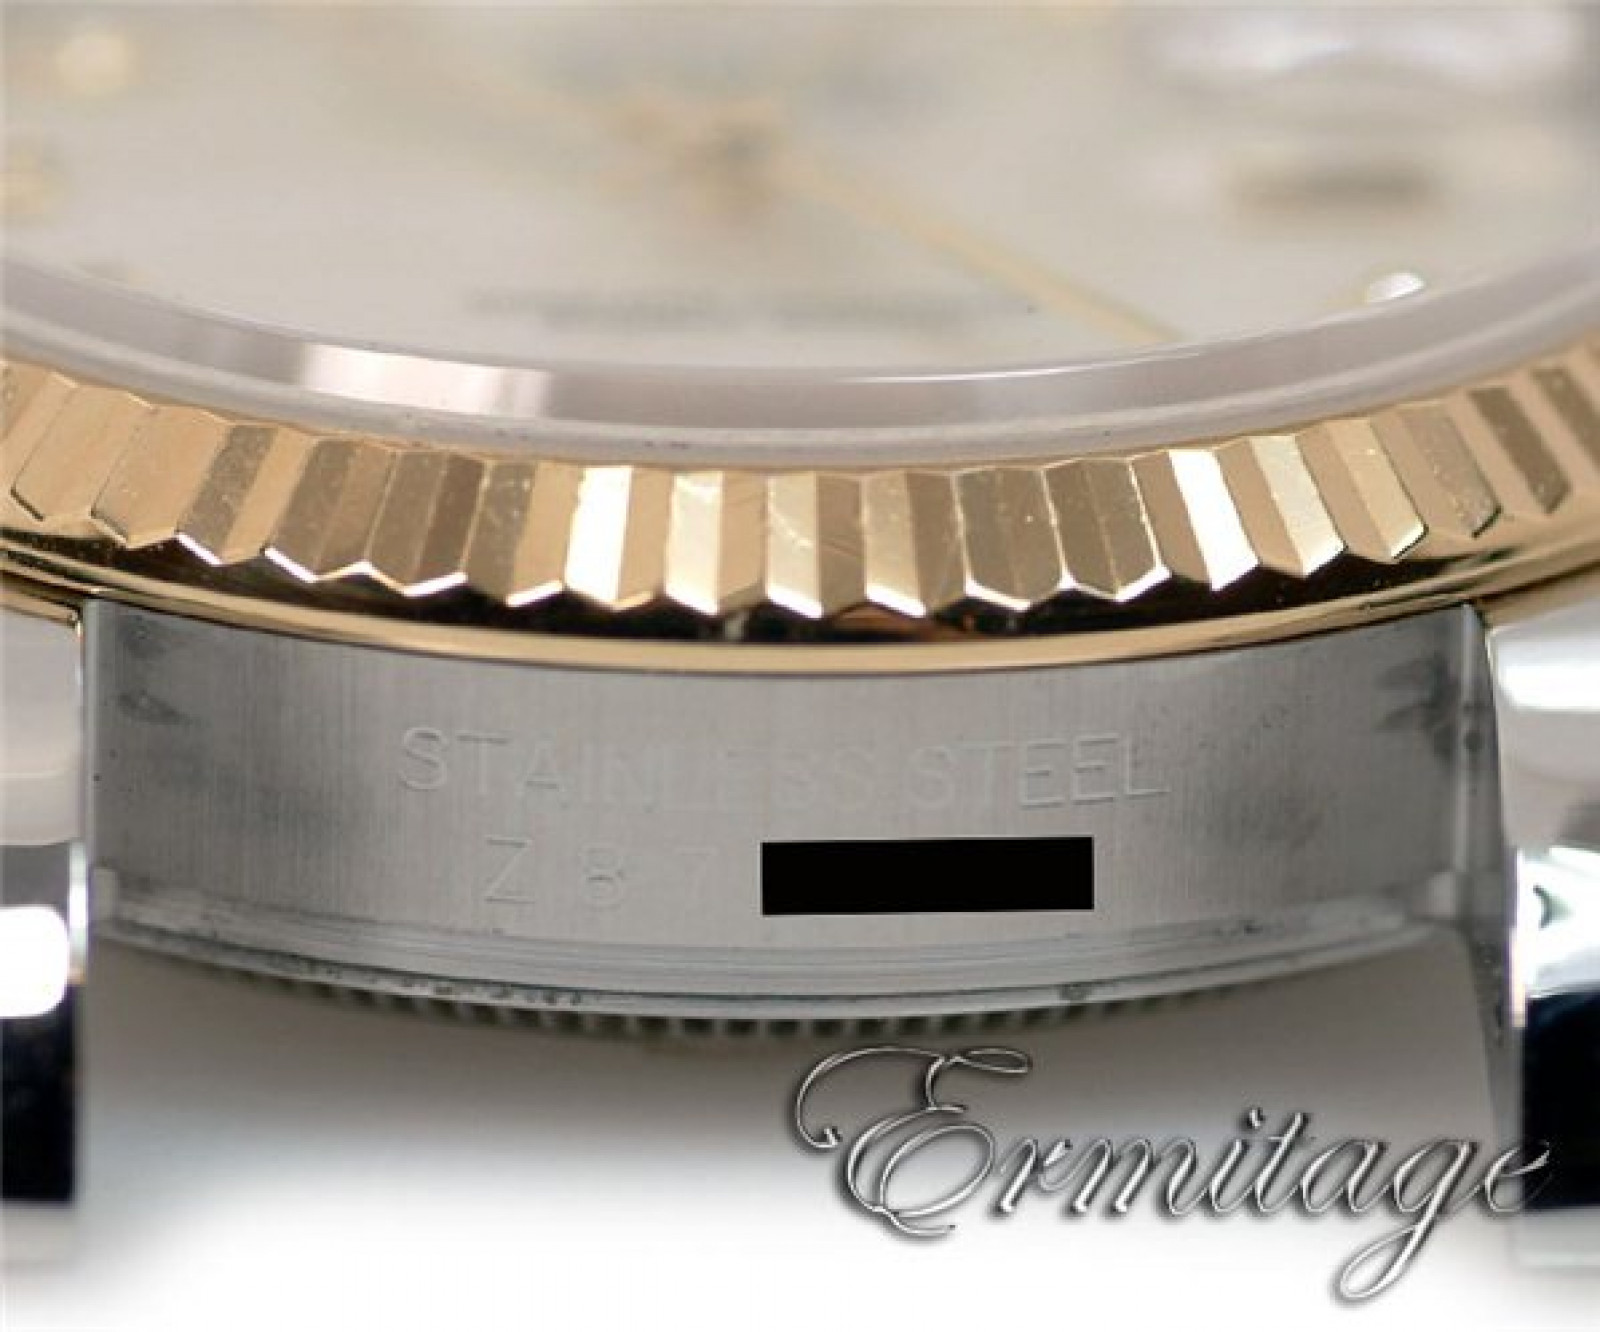 Pre-Owned Rolex Datejust 116233 with Diamonds